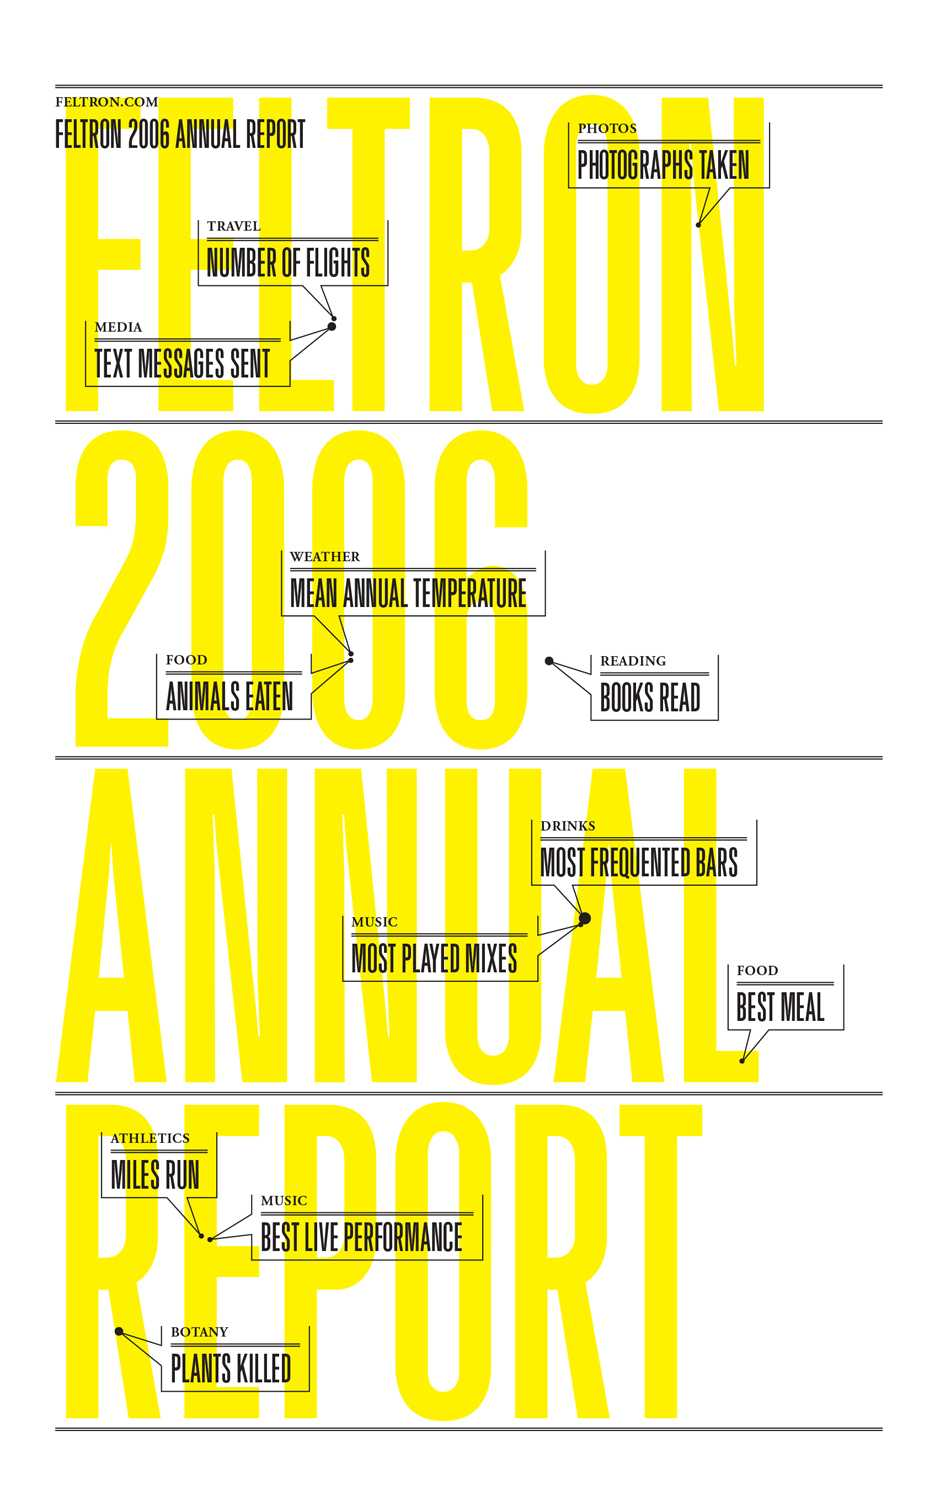 Feltron Annual Report - Cartographical Experiments  - 0333 35